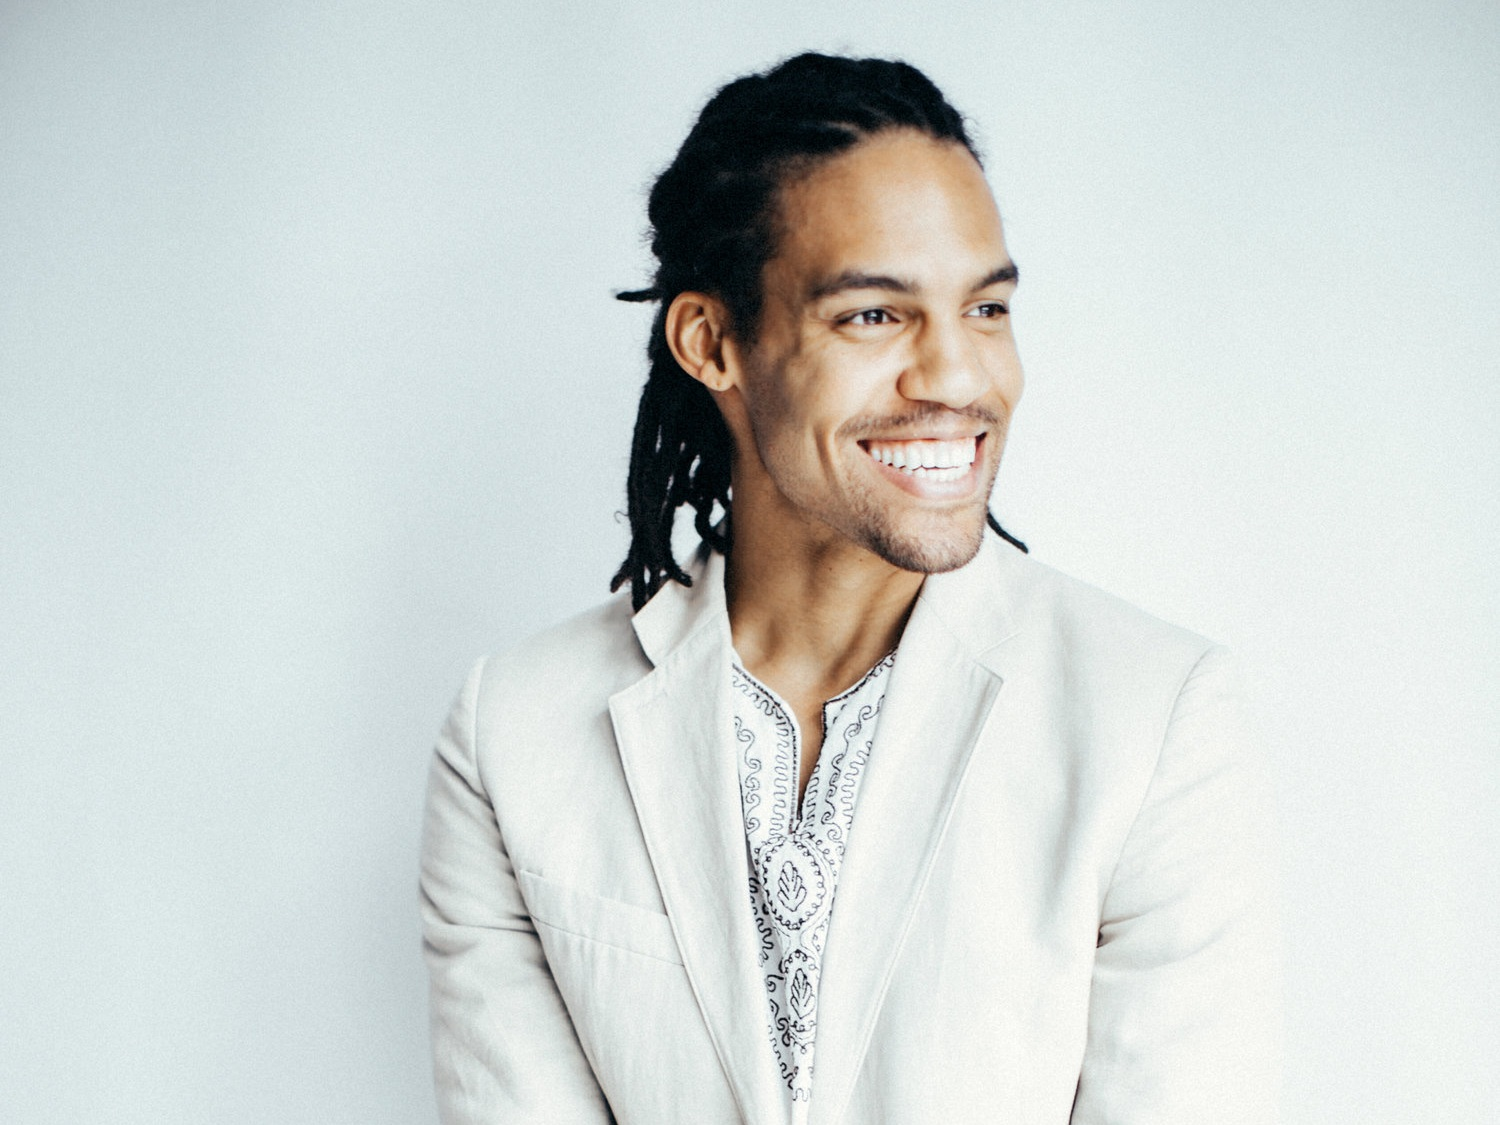 Artistic Director: Pierce Freelon - Durham native, and former Mayoral candidate Pierce Freelon has created several institutions of social justice and arts-activism, including Blackspace, a digital makerspace in partnership with American Underground, Beat Making Lab, an Emmy-Award winning community music program sponsored by Apple Inc.; and Poetic Justice, a hip hop and spoken word after-school program that has served Durham Public Schools and the Durham Crime Prevention Council.